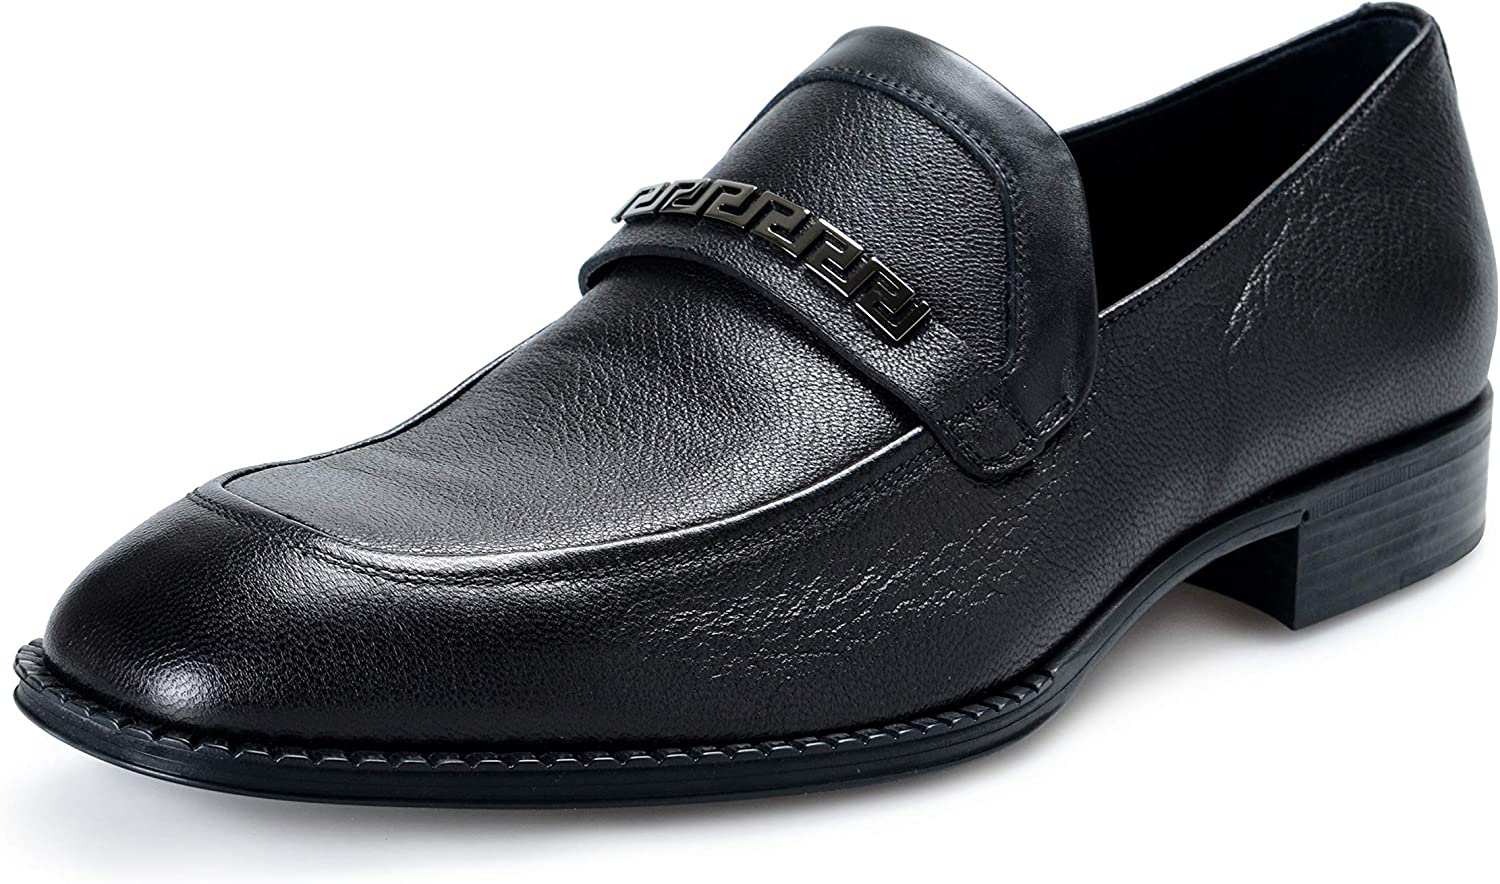 Leather Loafers Slip On Shoes